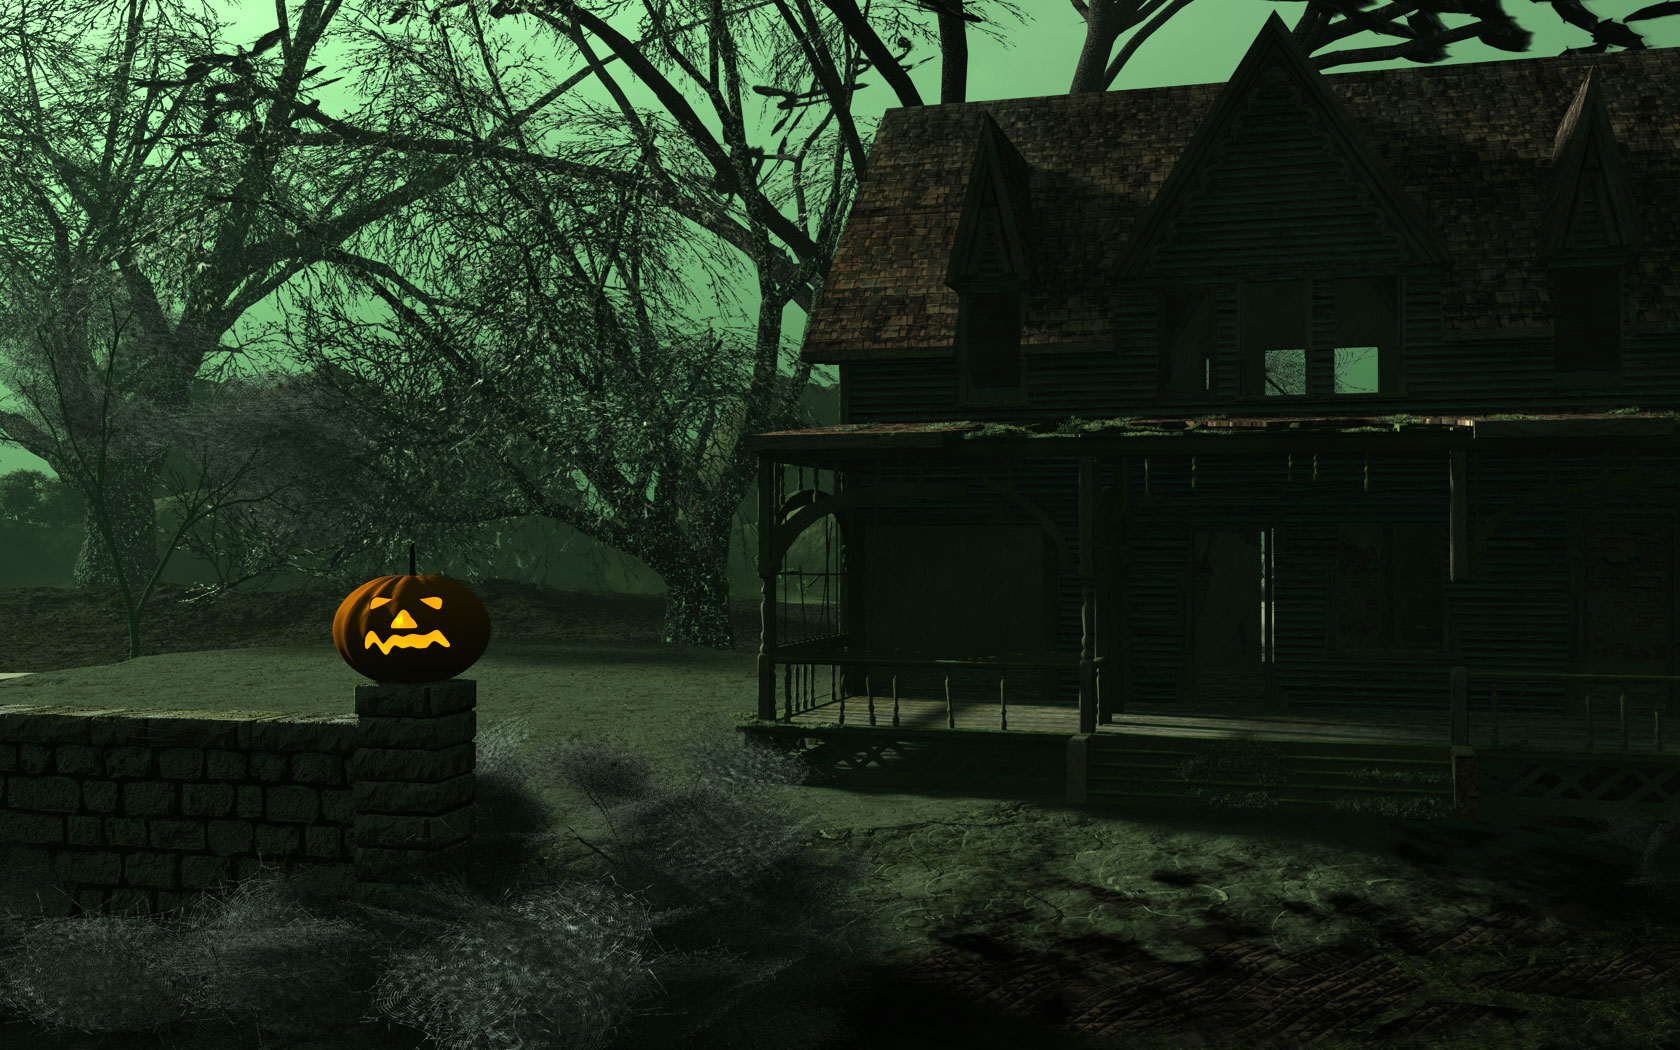 HD Happy Halloween 2012 Desktop Wallpaper 1080p FFGREEE2242 4 468×292 Wallpaper